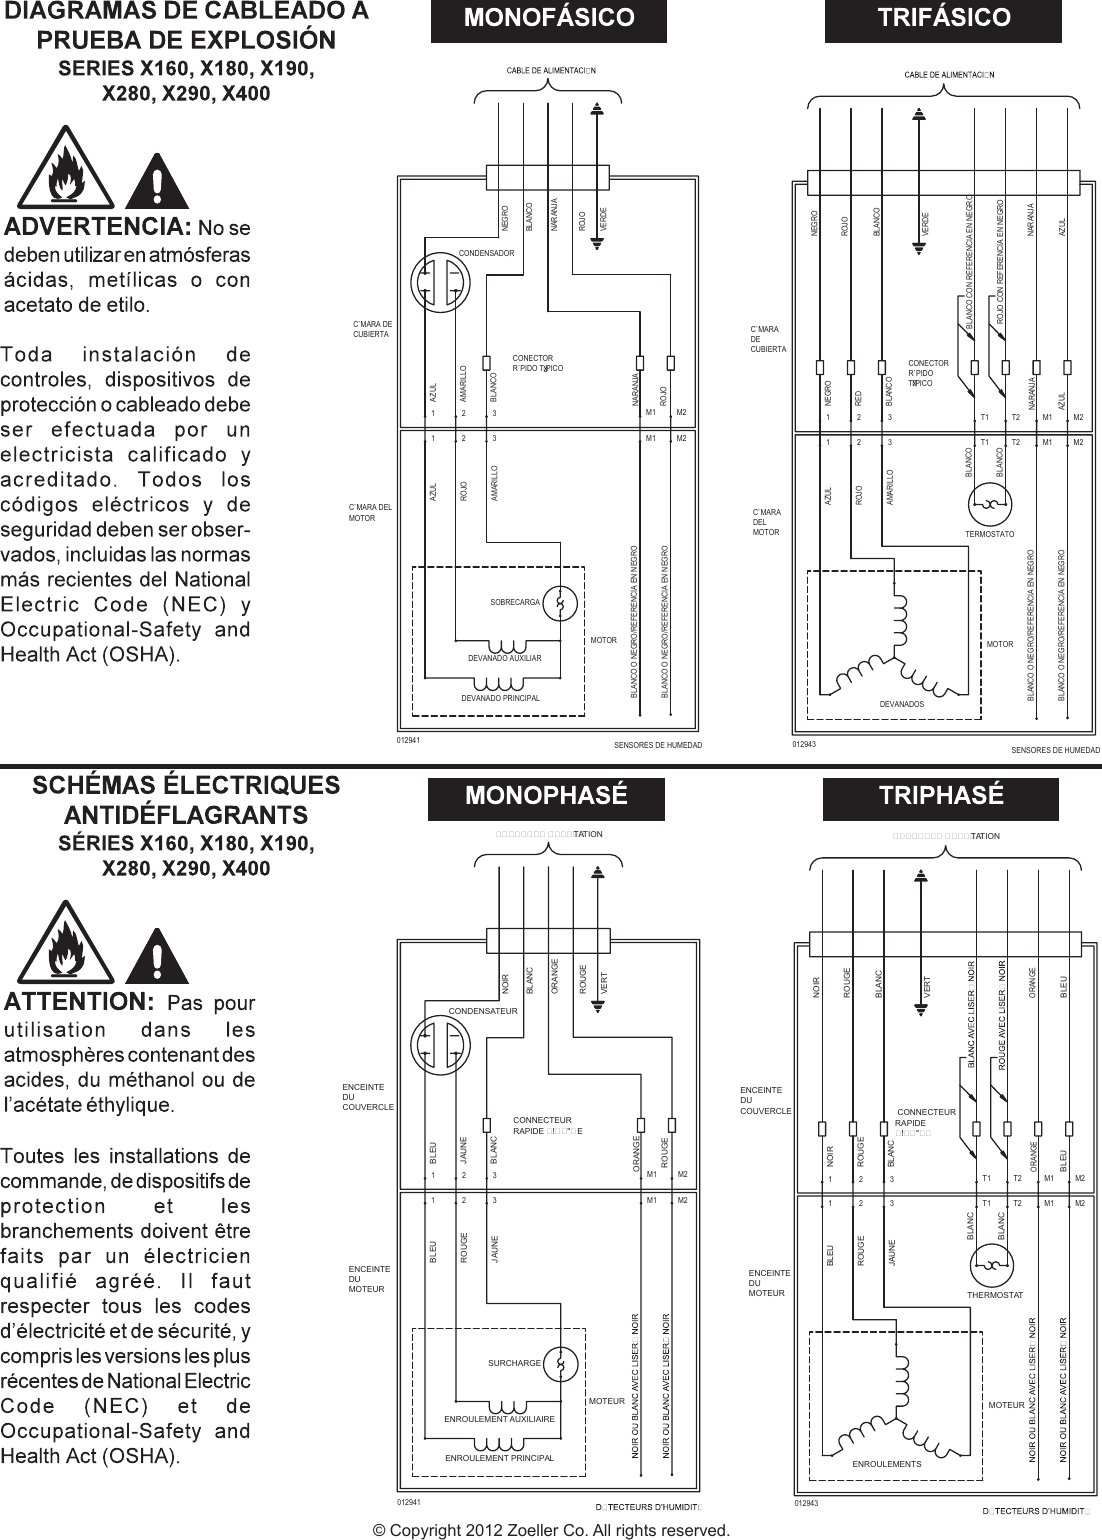 548011 4 zoeller x292 wiring diagram  usermanual.wiki